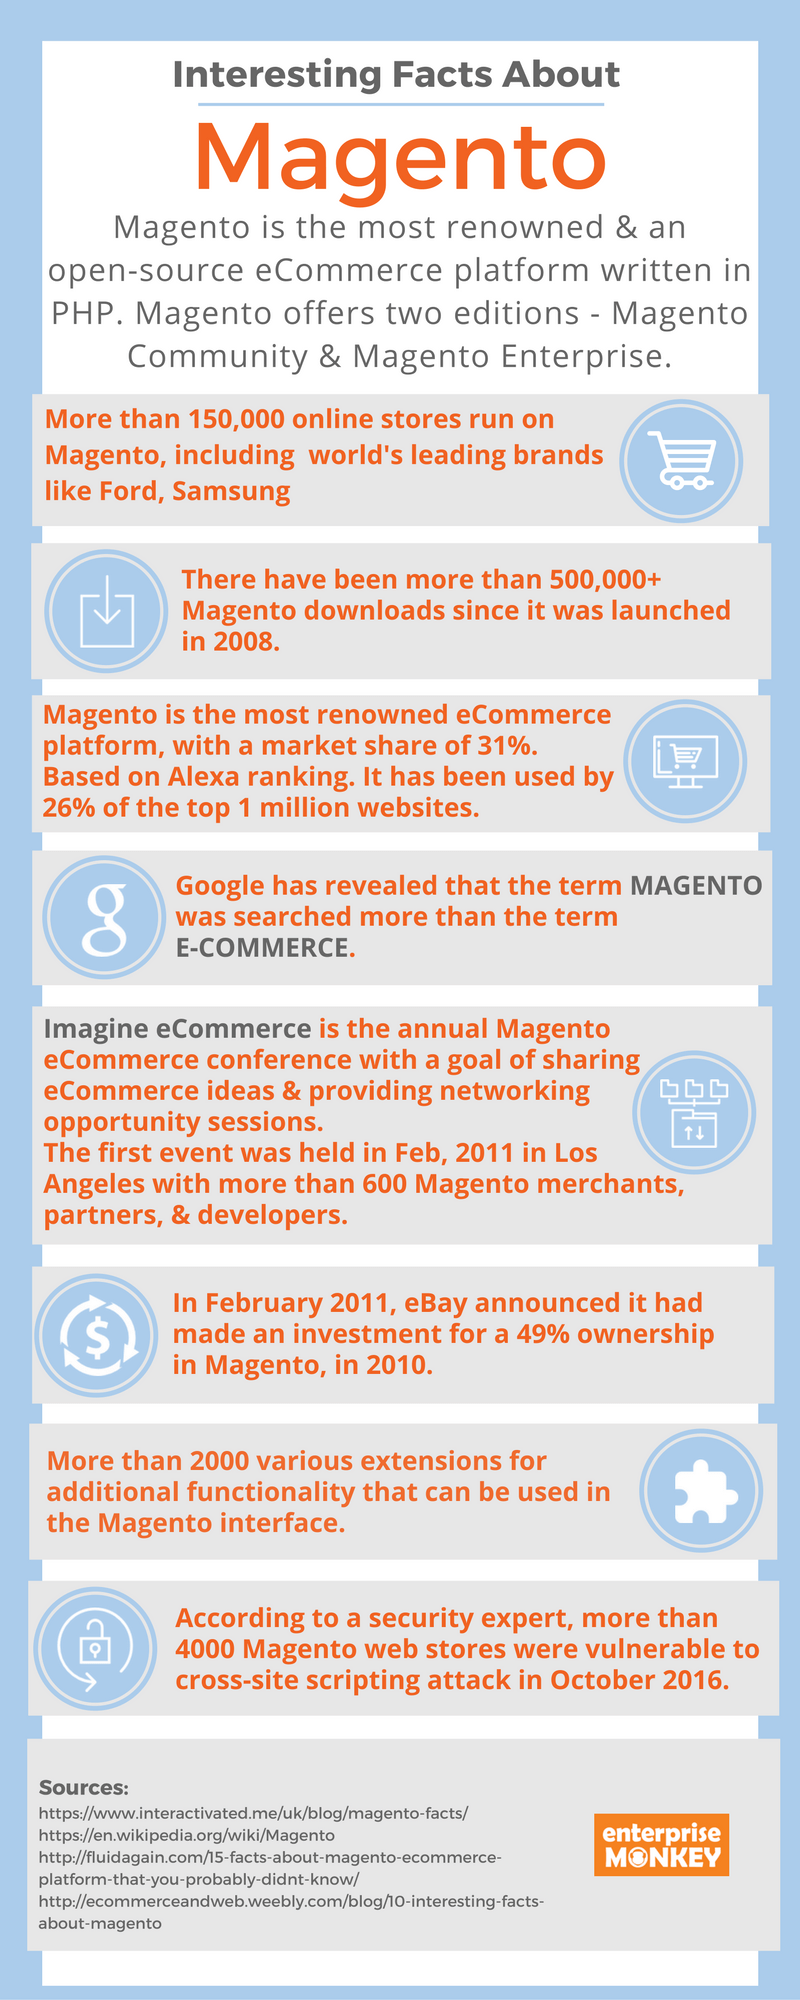 Interesting Facts About Magento [Infographic]